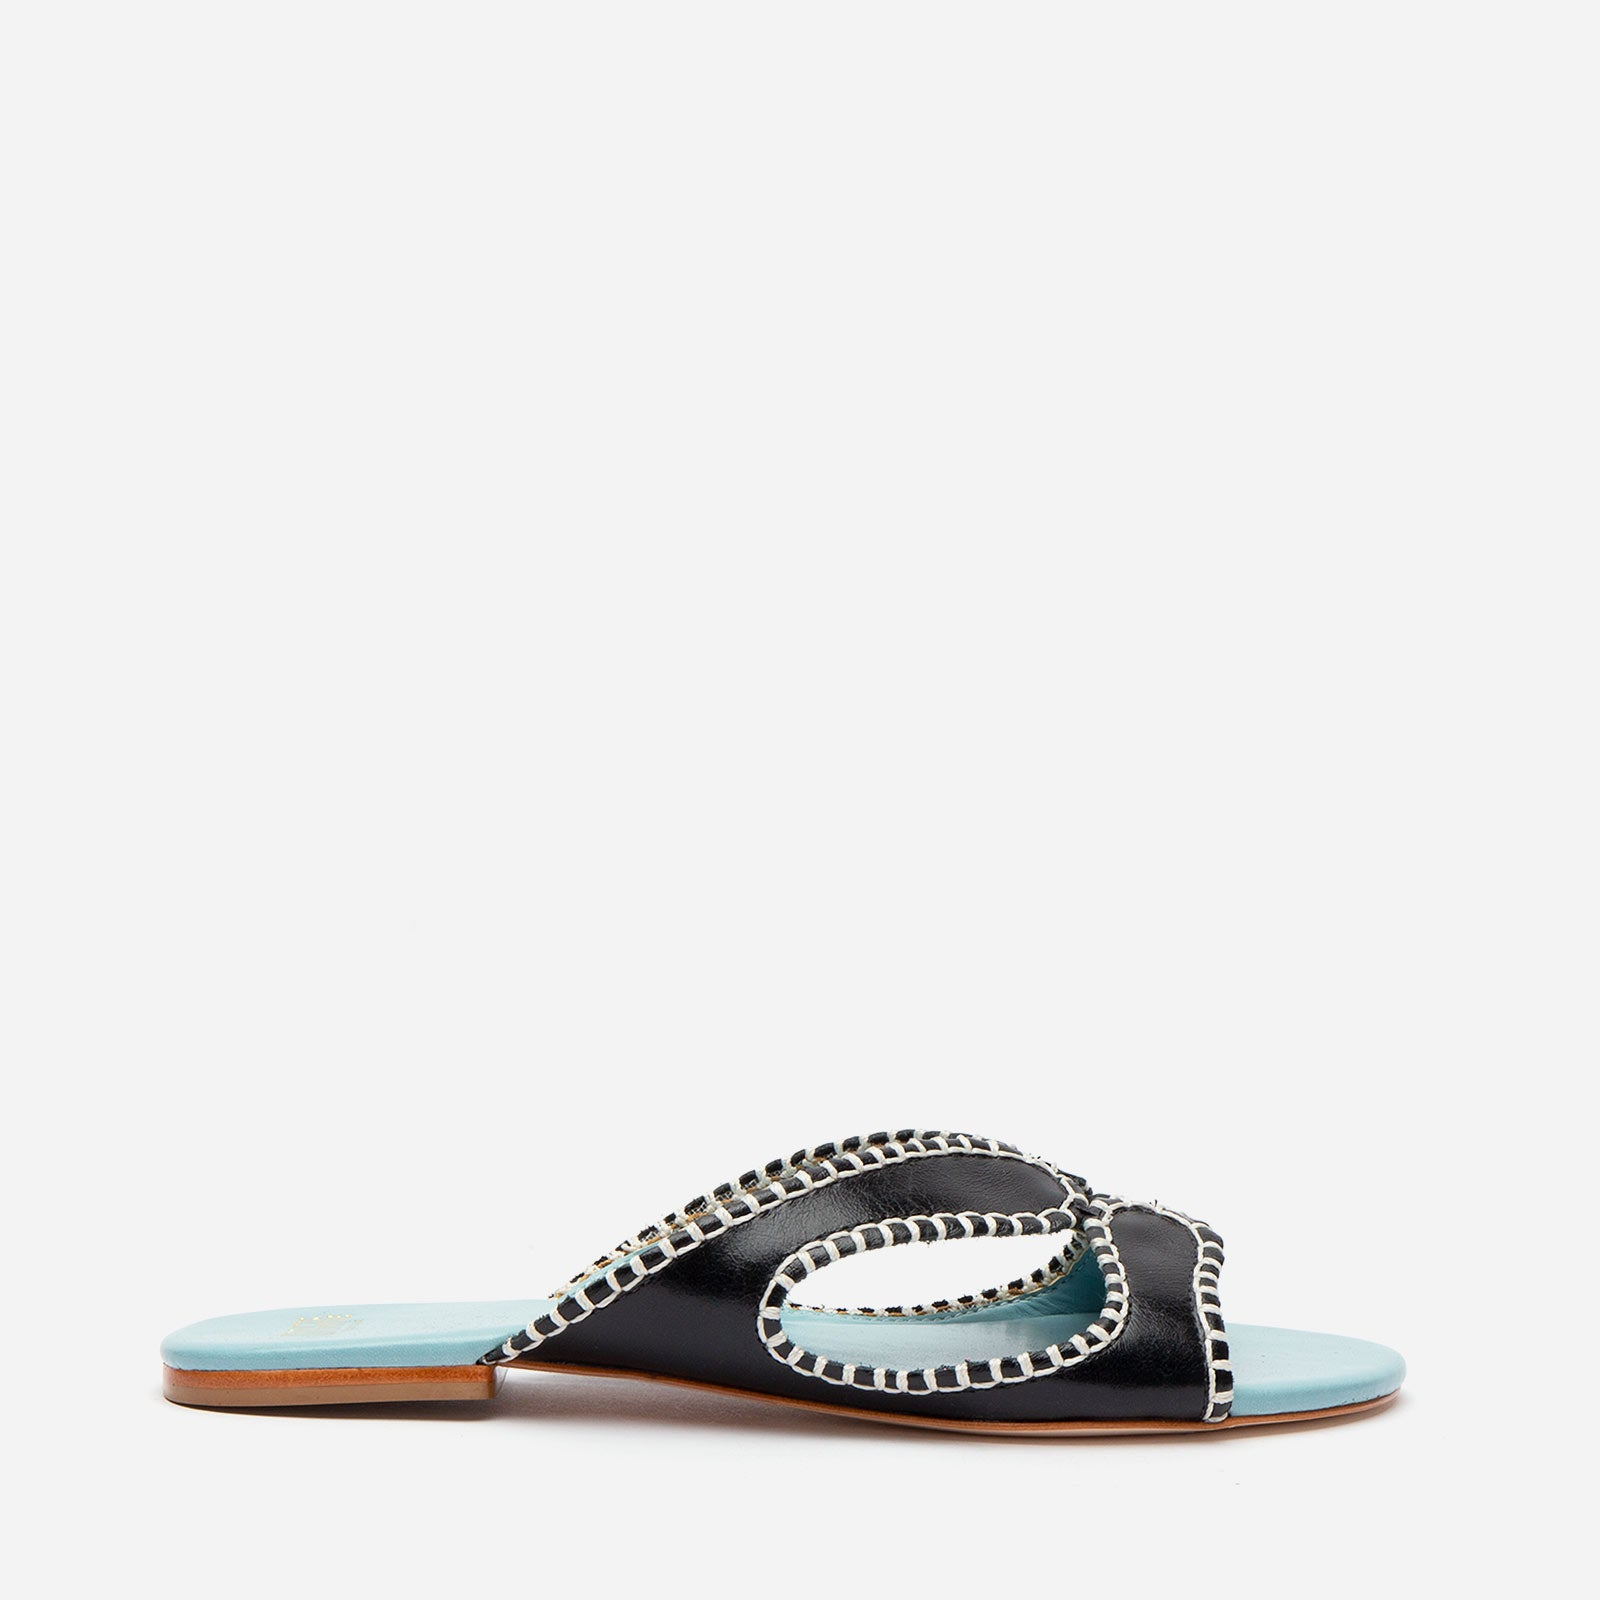 Meredith Blanket Stitch Sandal Black - Frances Valentine